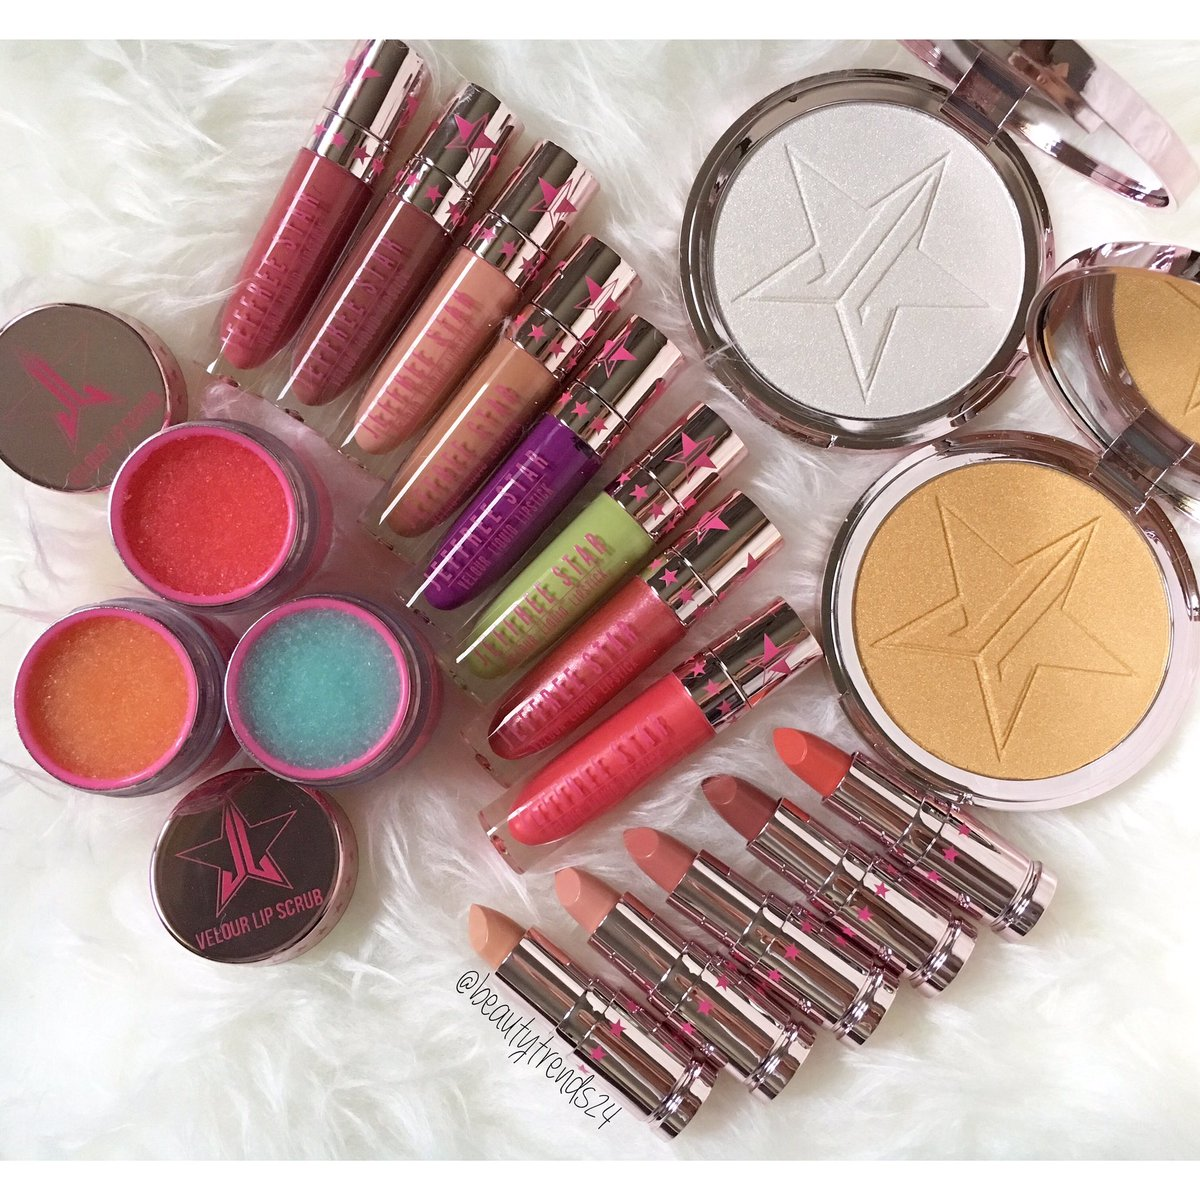 Who&#39;s ready for the new @JeffreeStar collection??!! #jeffreestarcosmetics #makeup #makeupaddict #makeupjunkie #makeupwhore<br>http://pic.twitter.com/7NHbqOIaM6